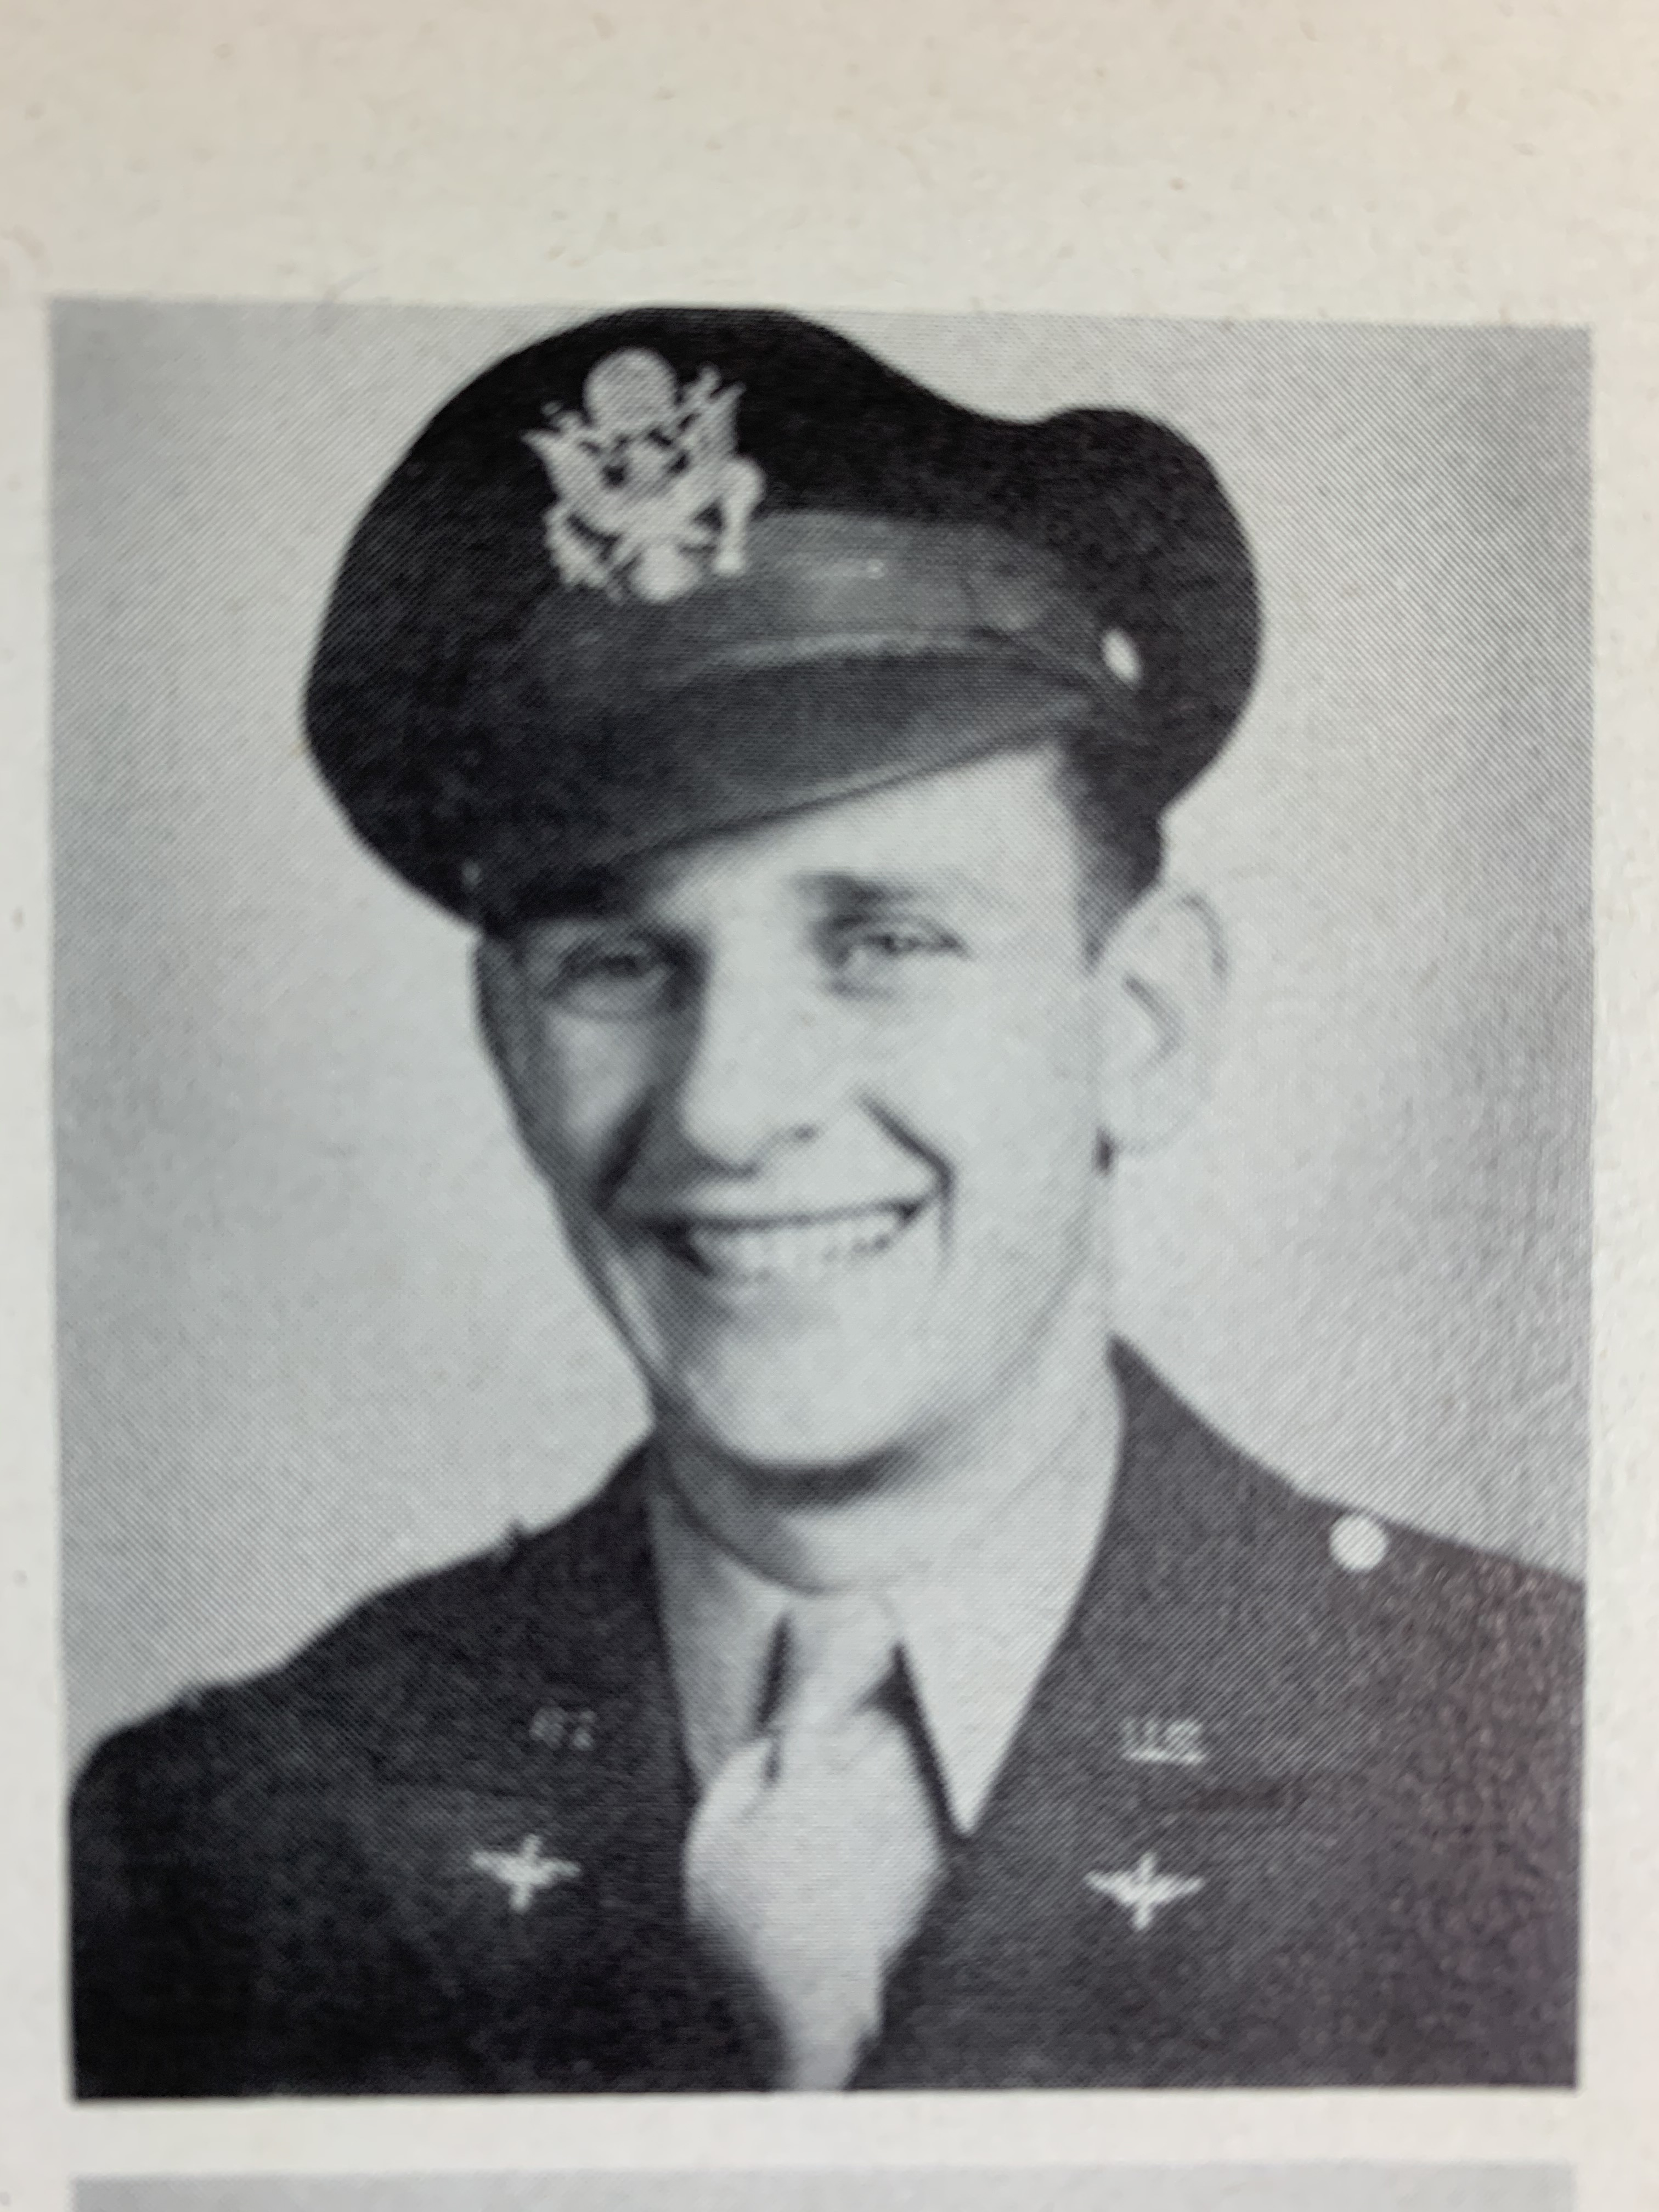 Stewart Malquist graduating with his wings in June 1944.